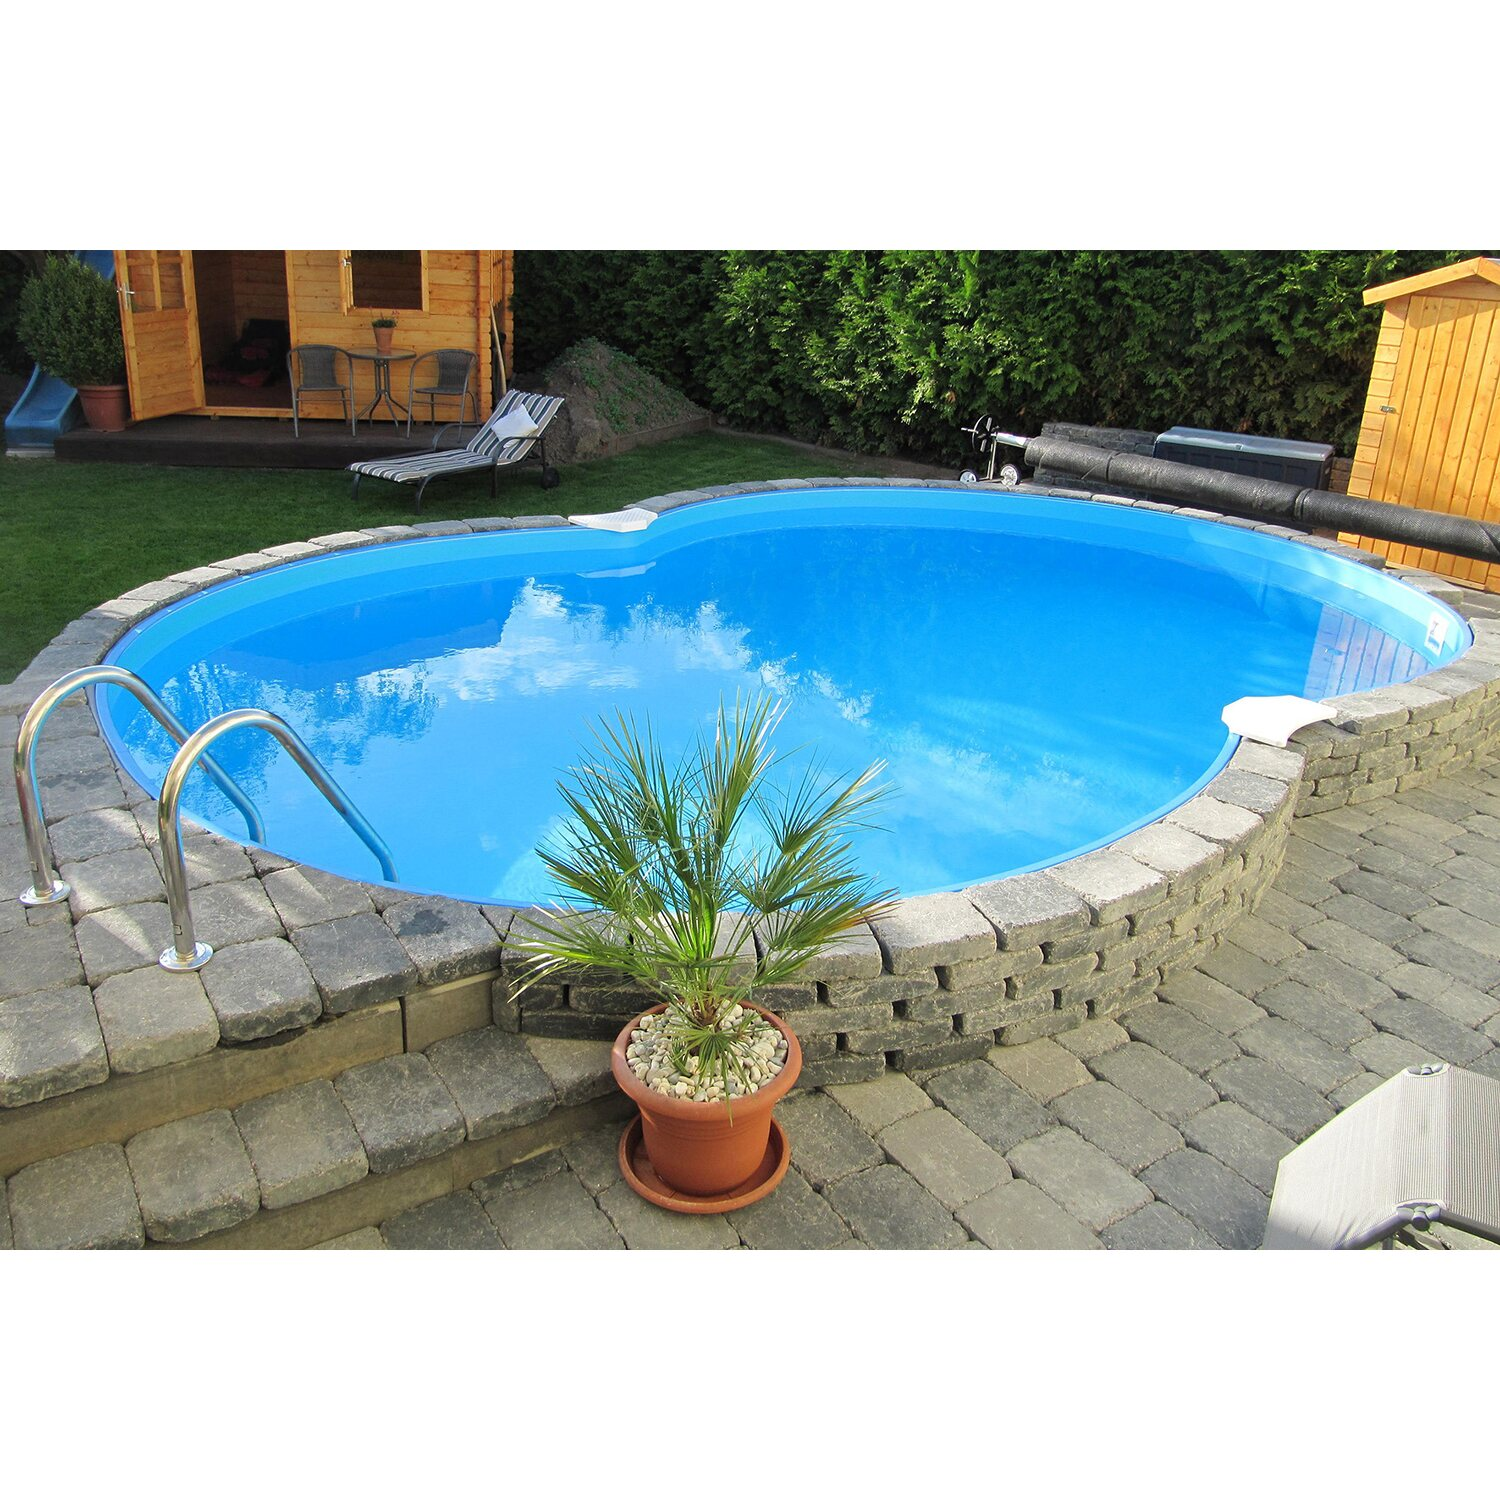 Pool set cannes halbhoch einbaubecken achtform 625 cm x for Stahlwandbecken oval